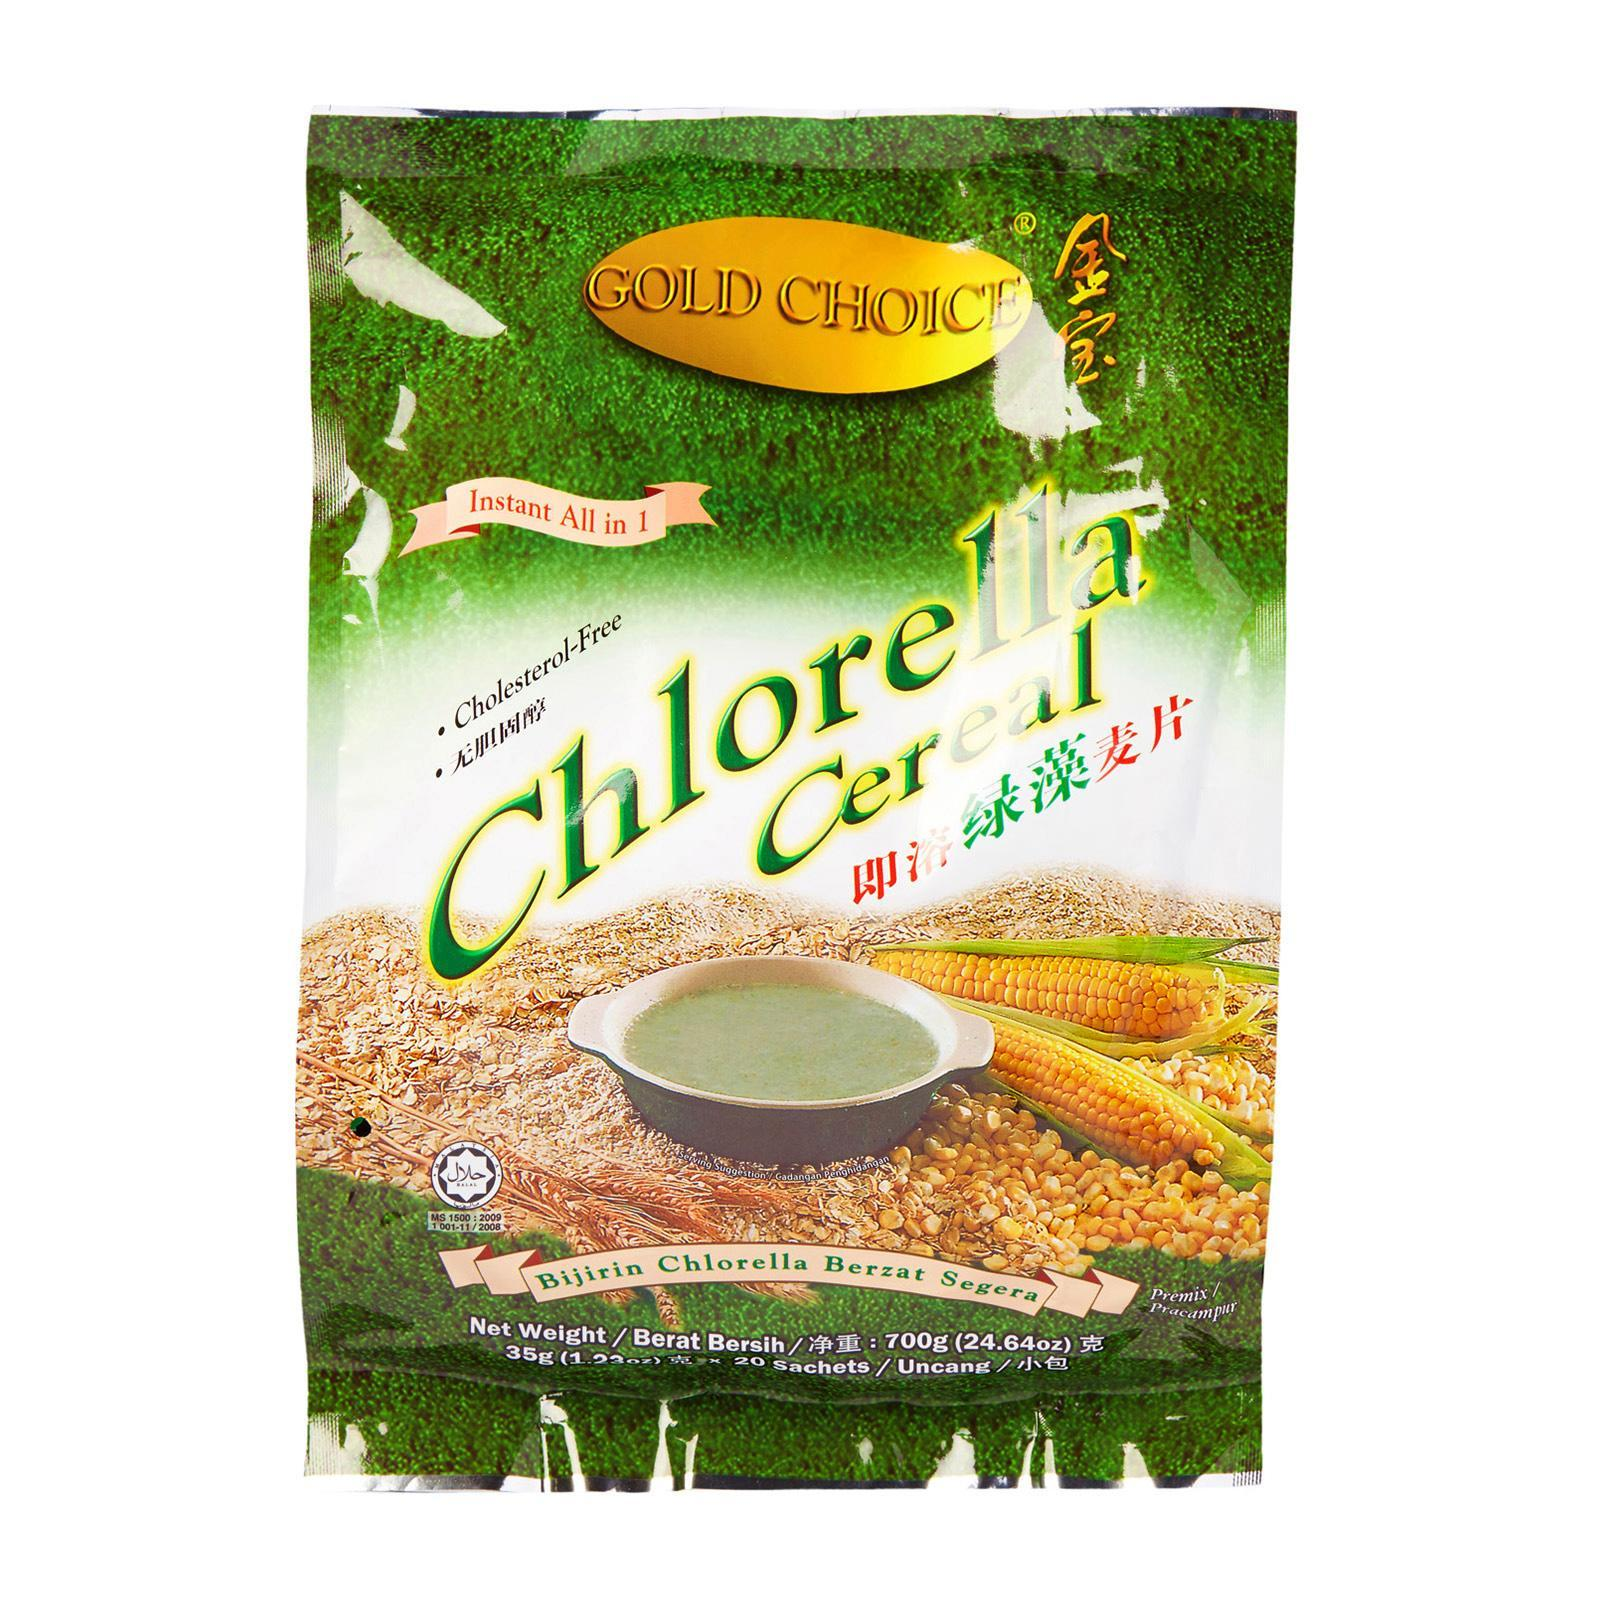 Gold Choice Chlorella Cereal Premix By Redmart